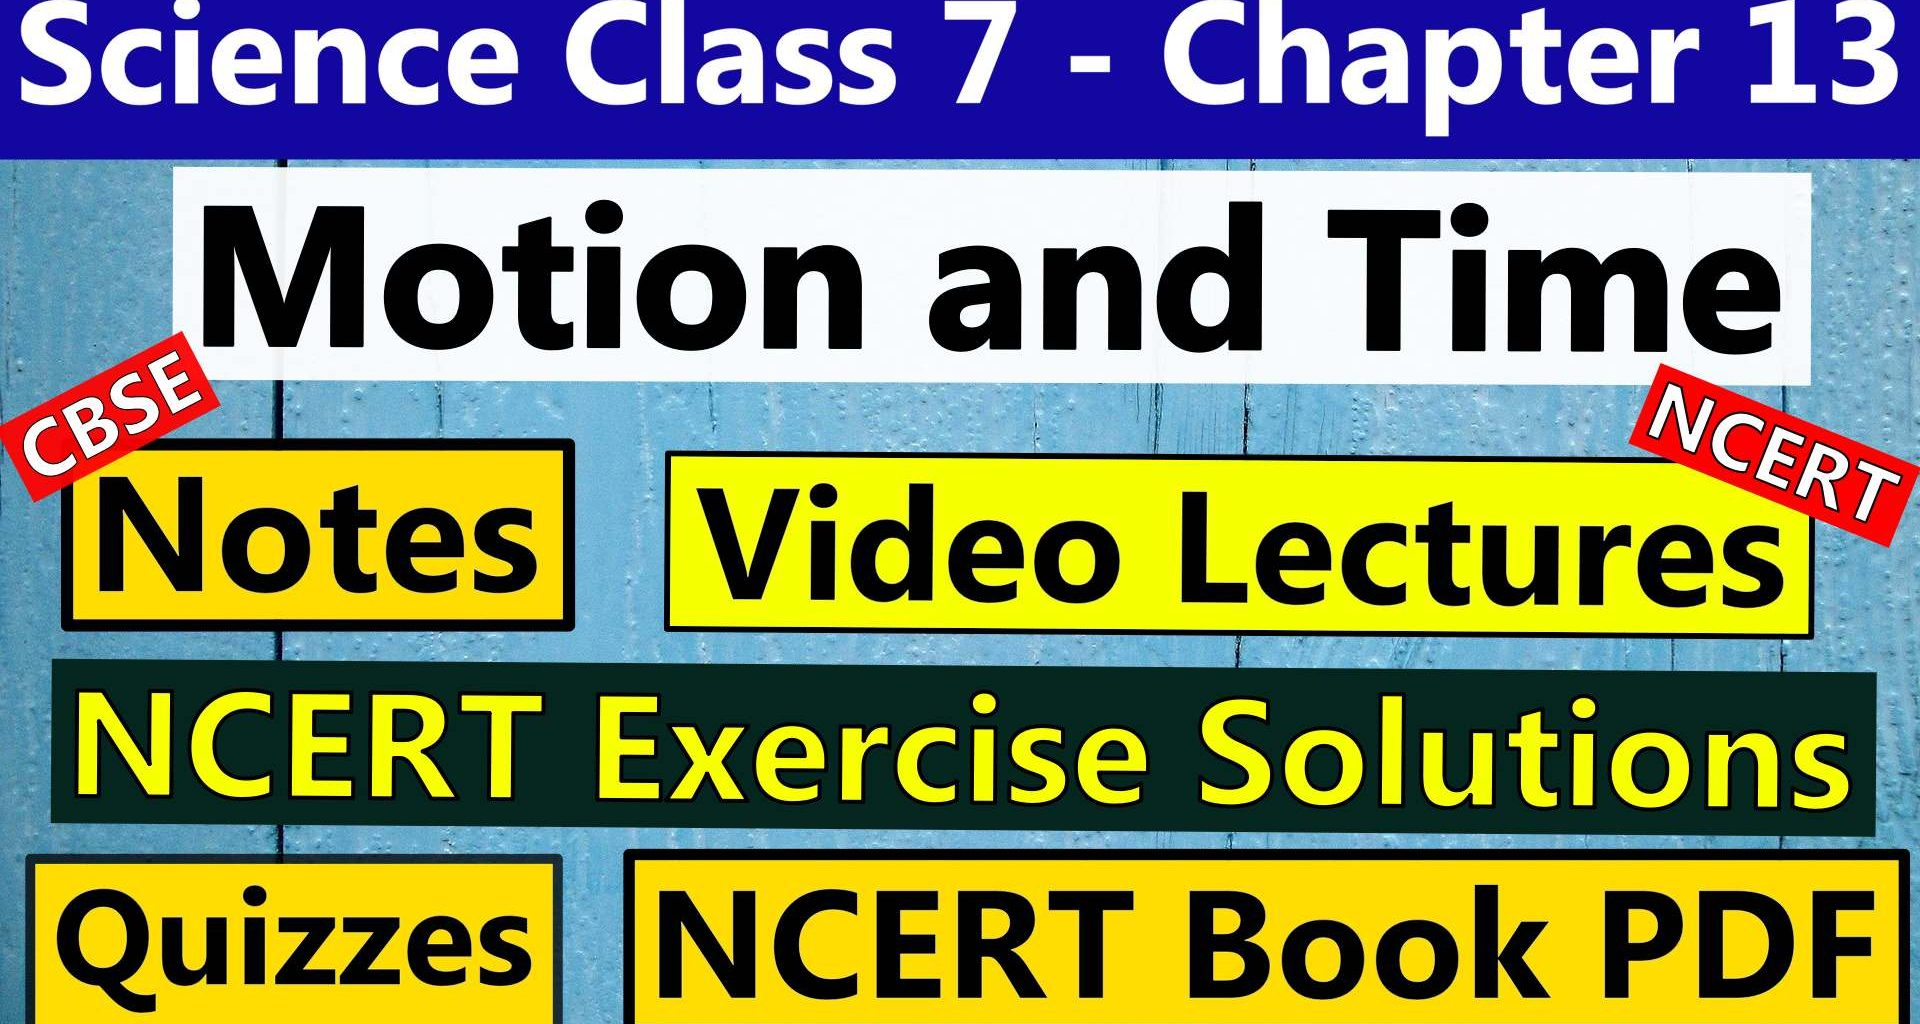 Science Class 7 Chapter 13 -Motion and Time